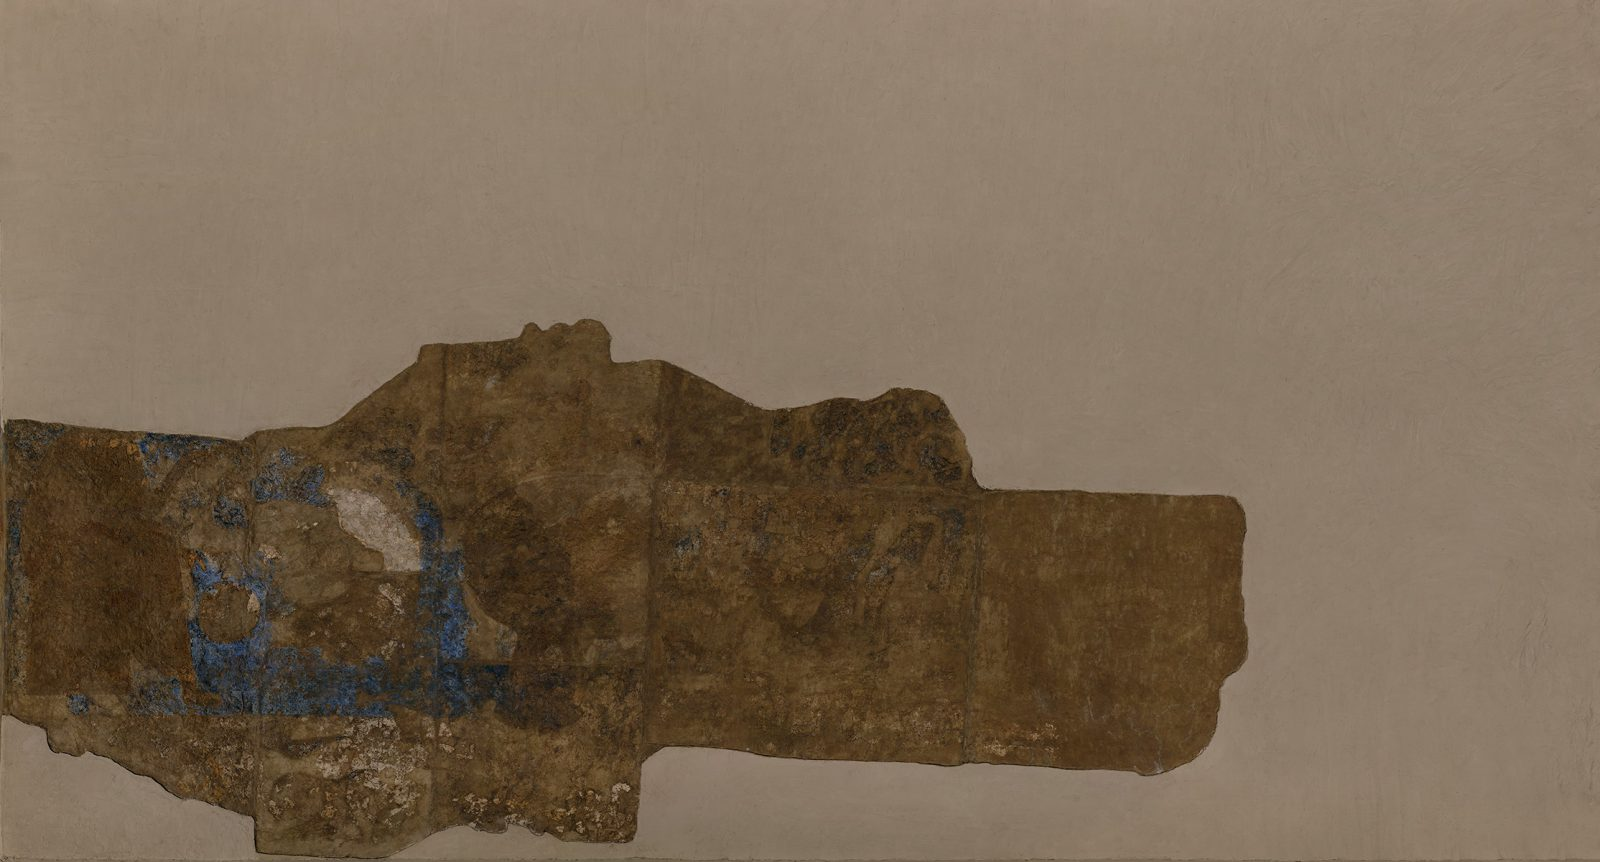 Today the paintings from the eastern wall are in two fragments. These figures, which appear to be part of a caravan, are on the northern portion of this wall.